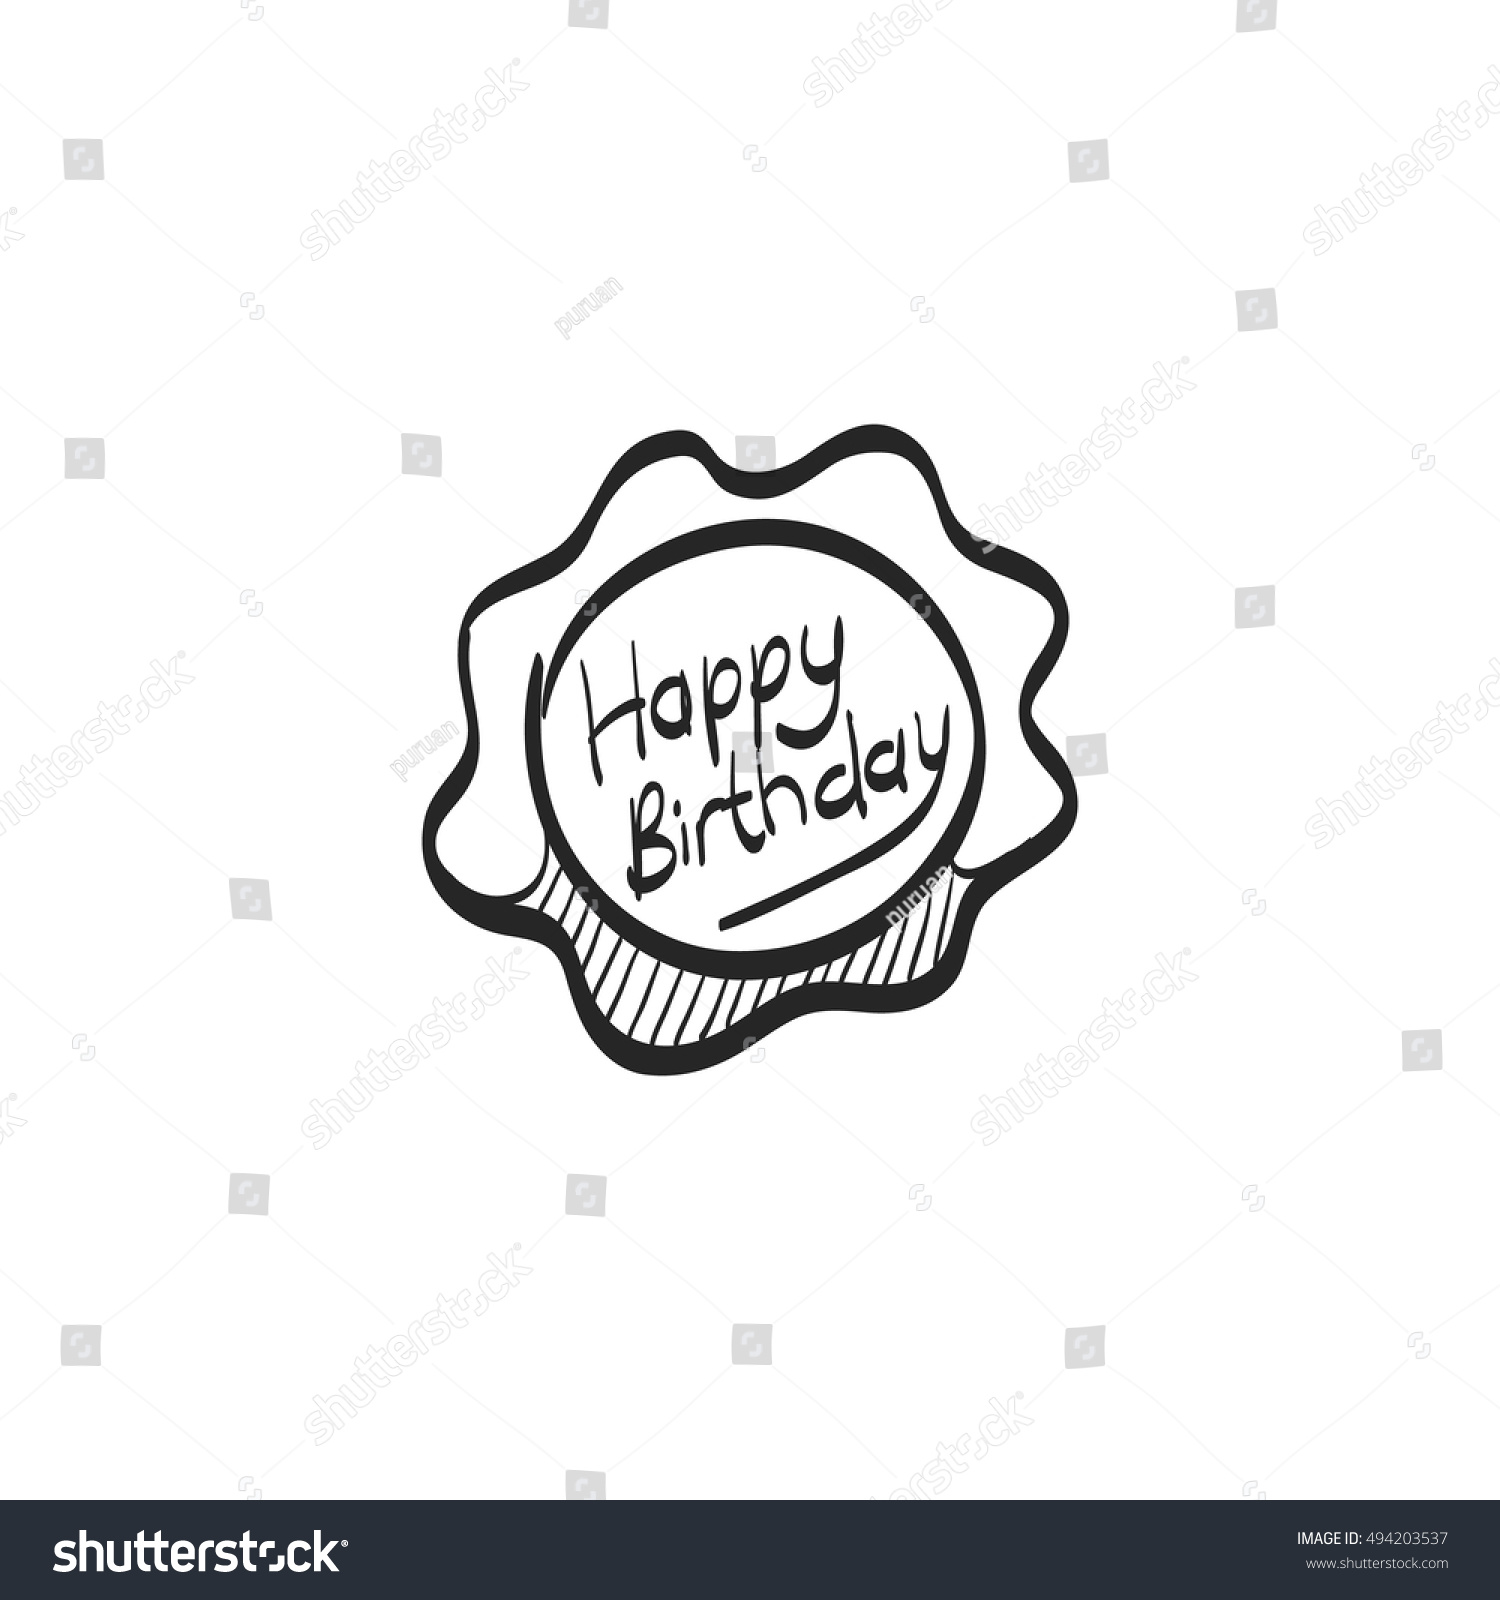 Birthday Cake Text Icon Doodle Sketch Stock Vector Royalty Free